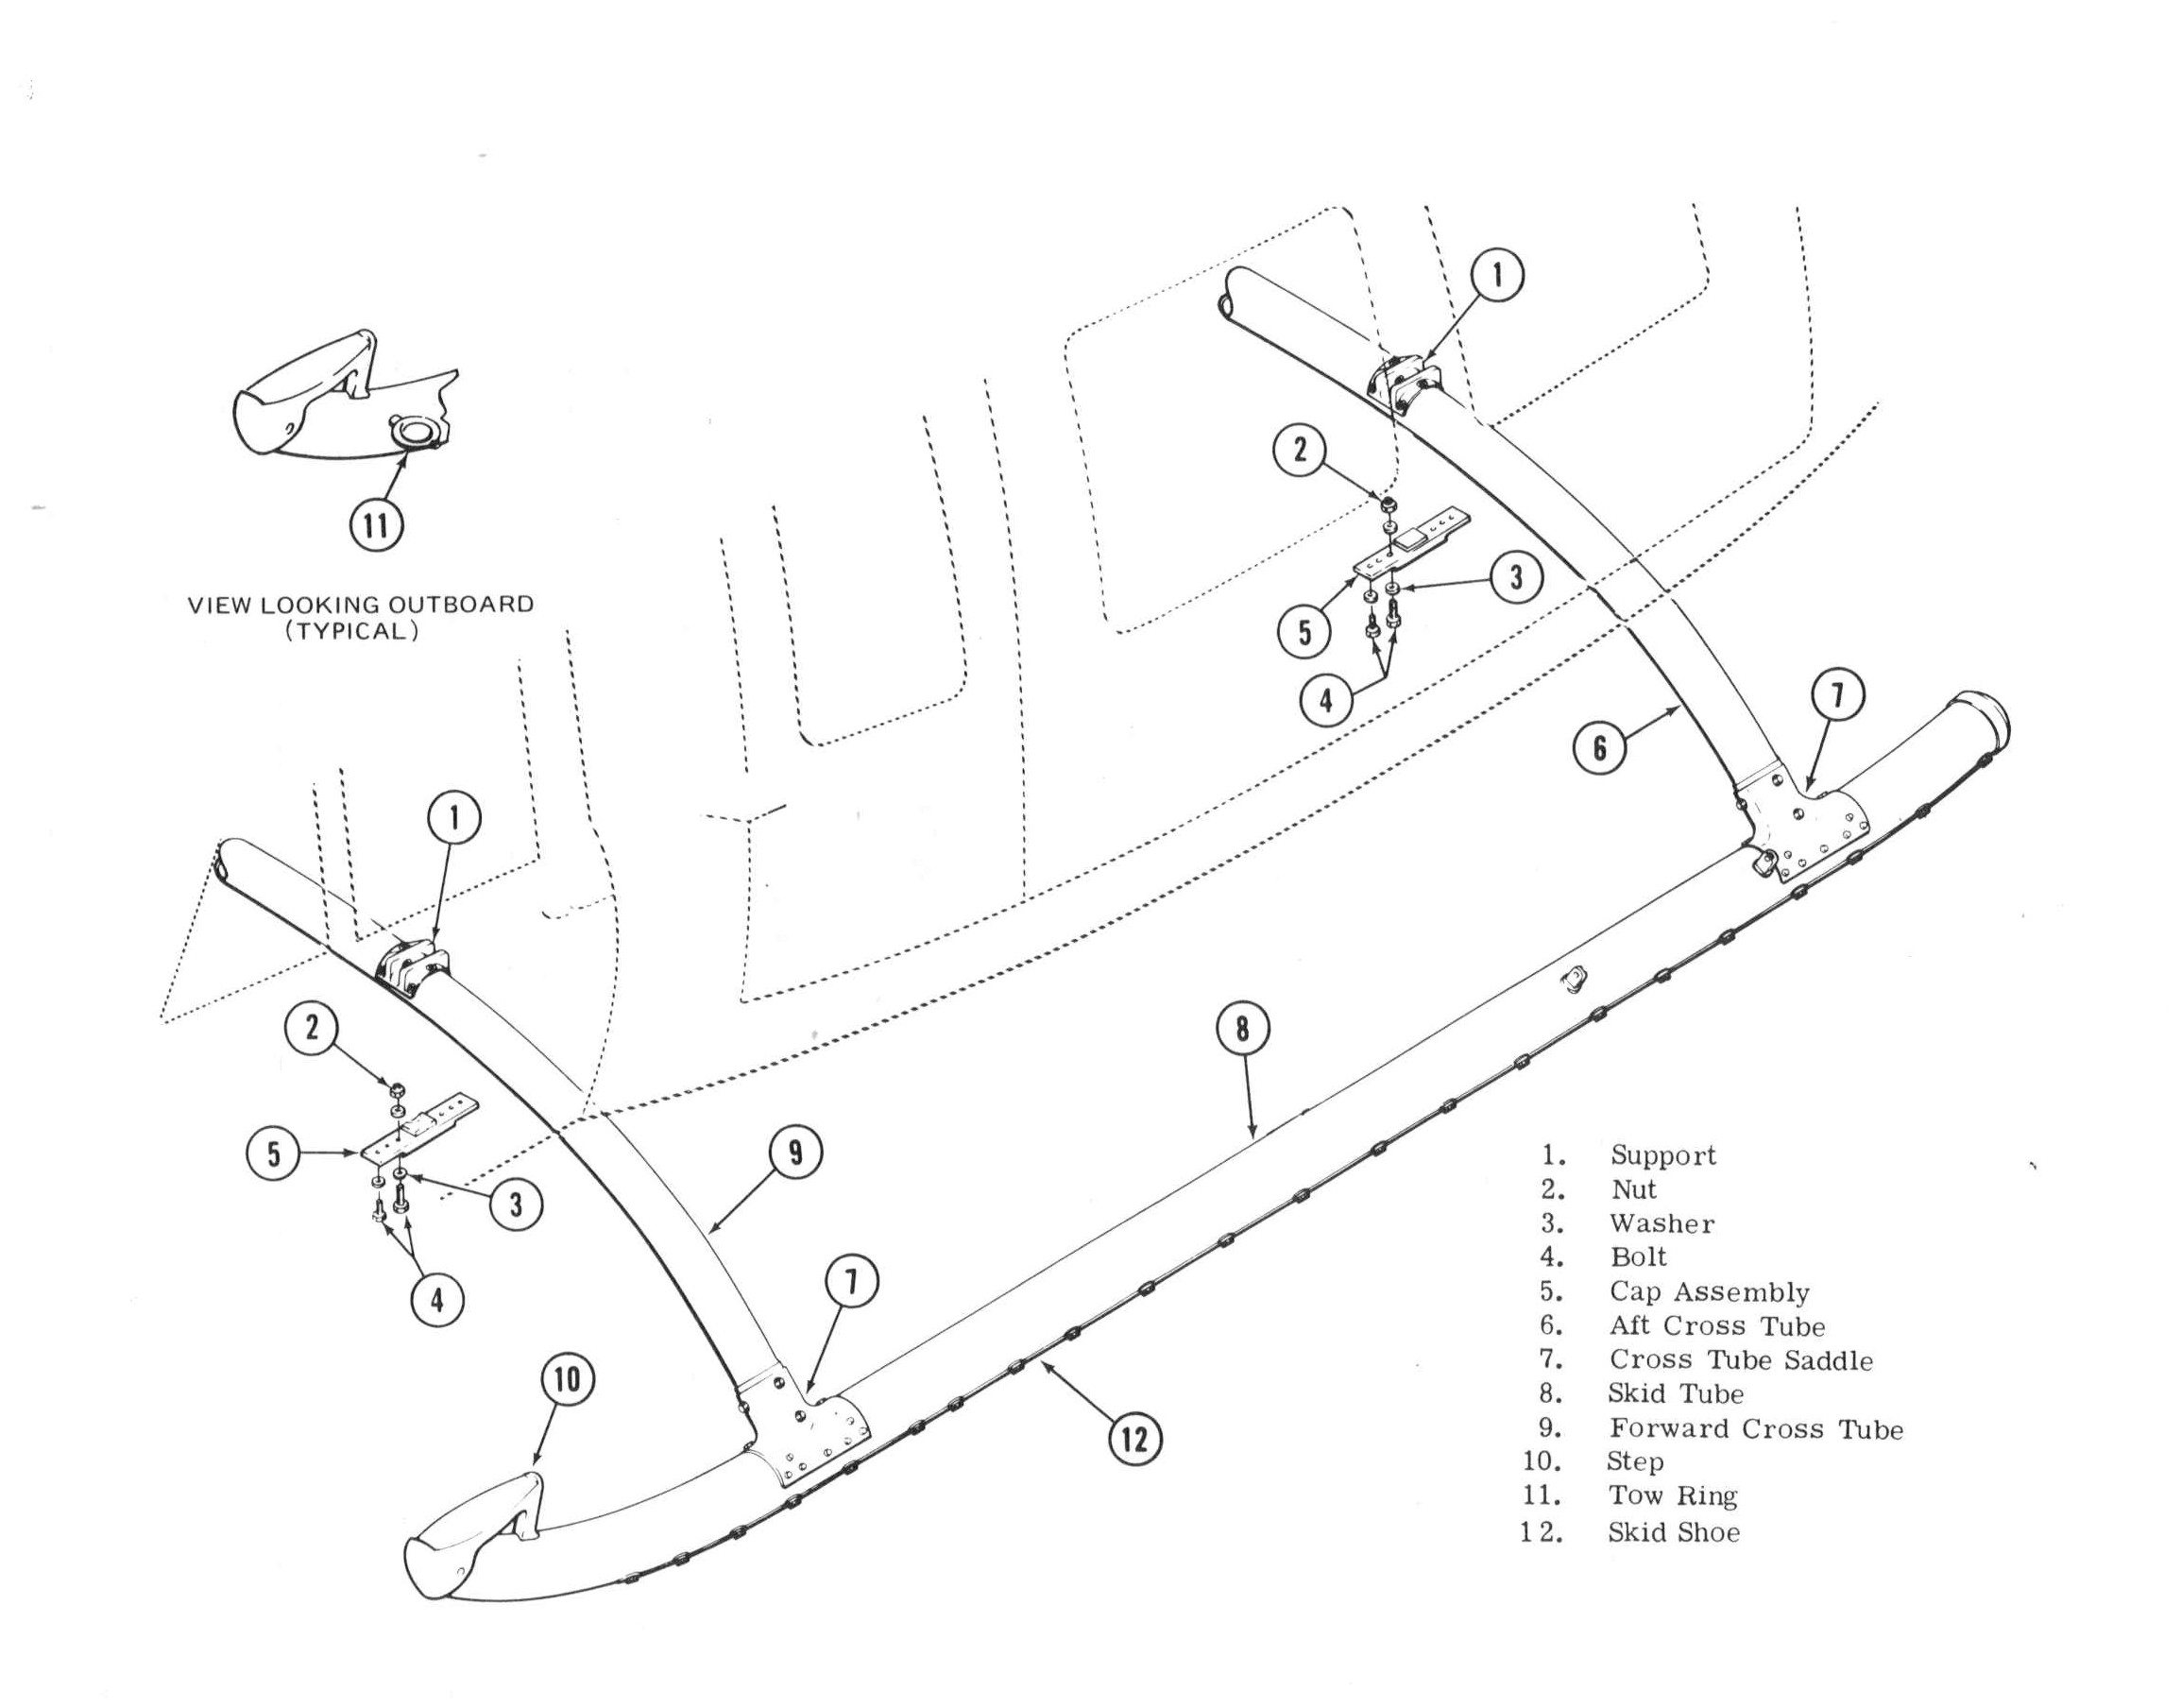 ac delco wiper motor wiring diagram  ac  free engine image for user manual download ACDelco Alternator Wiring Diagram 36 Volt Ezgo Wiring Diagram